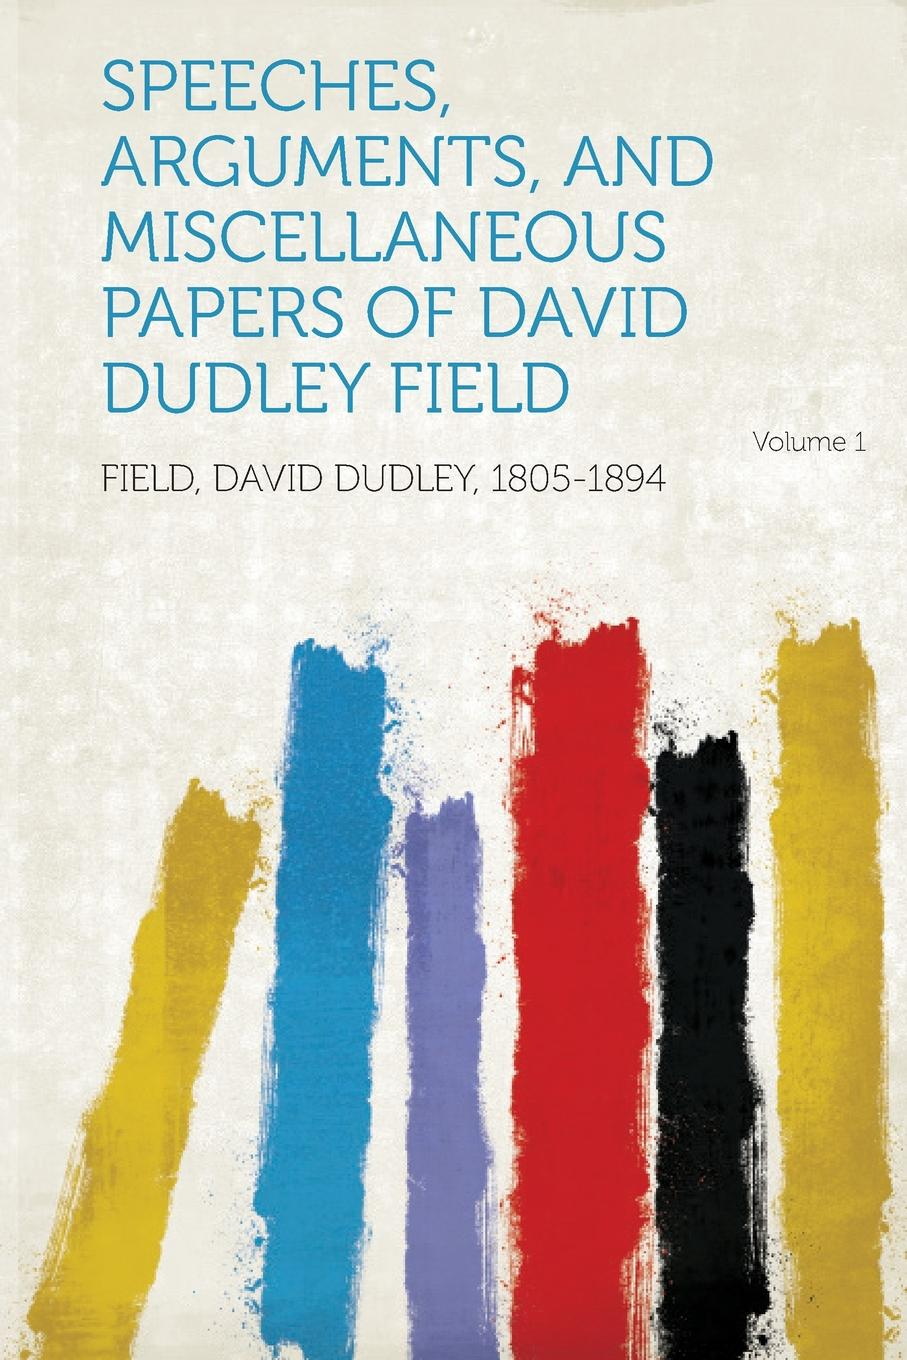 Field David Dudley 1805-1894 Speeches, Arguments, and Miscellaneous Papers of David Dudley Field Volume 1 field david dudley the vote that made the president